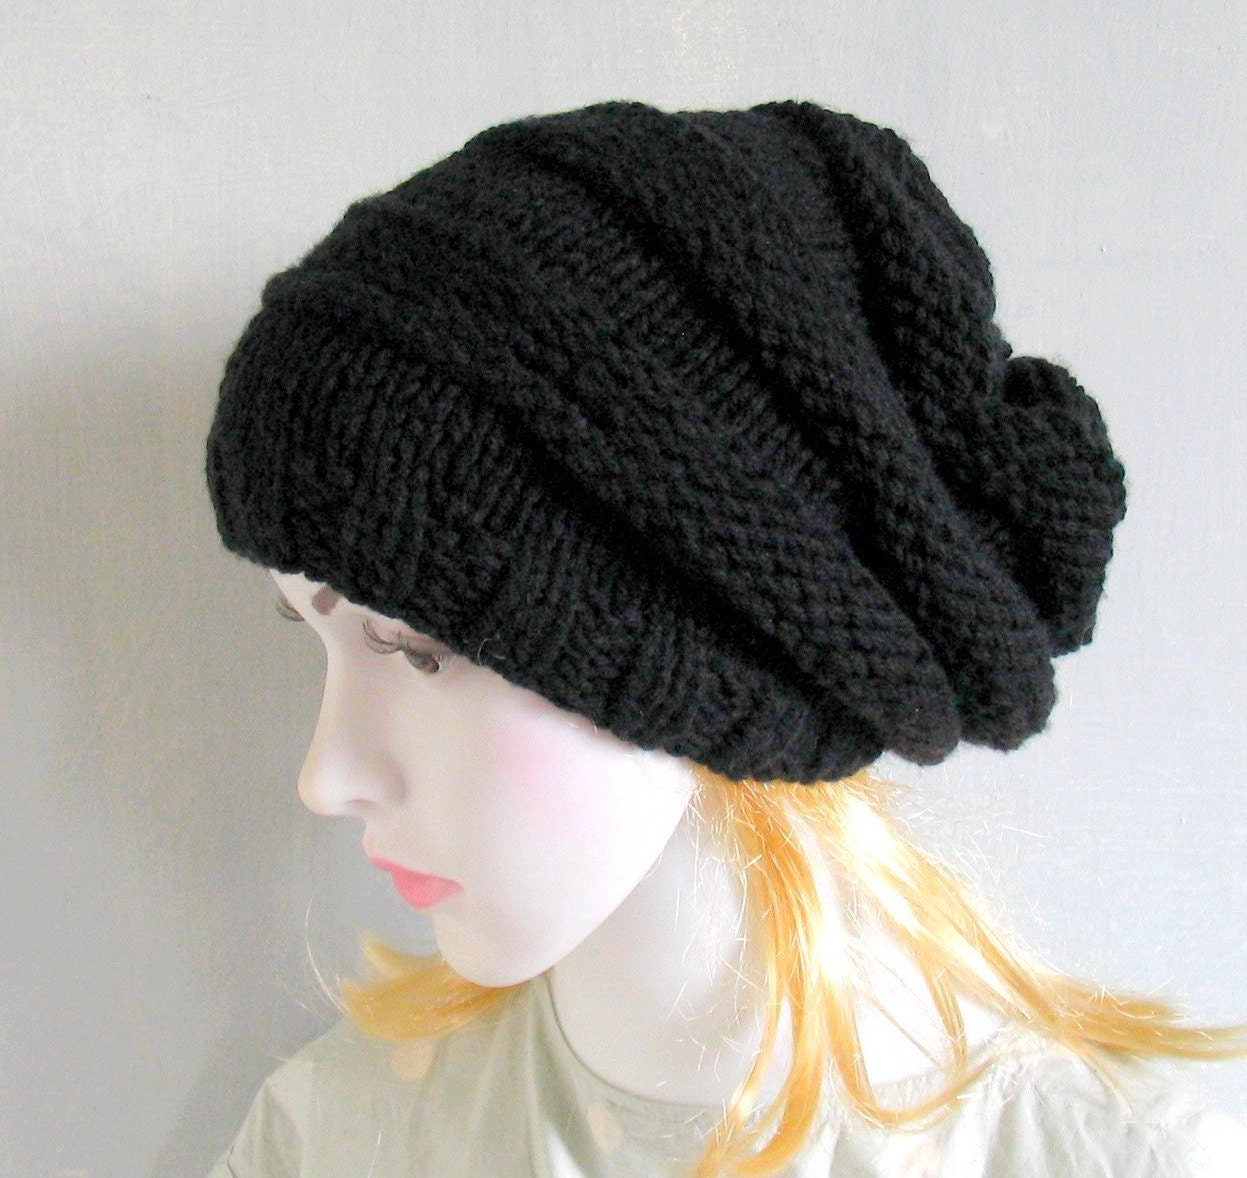 You searched for: womens black beanie! Etsy is the home to thousands of handmade, vintage, and one-of-a-kind products and gifts related to your search. No matter what you're looking for or where you are in the world, our global marketplace of sellers can help you .